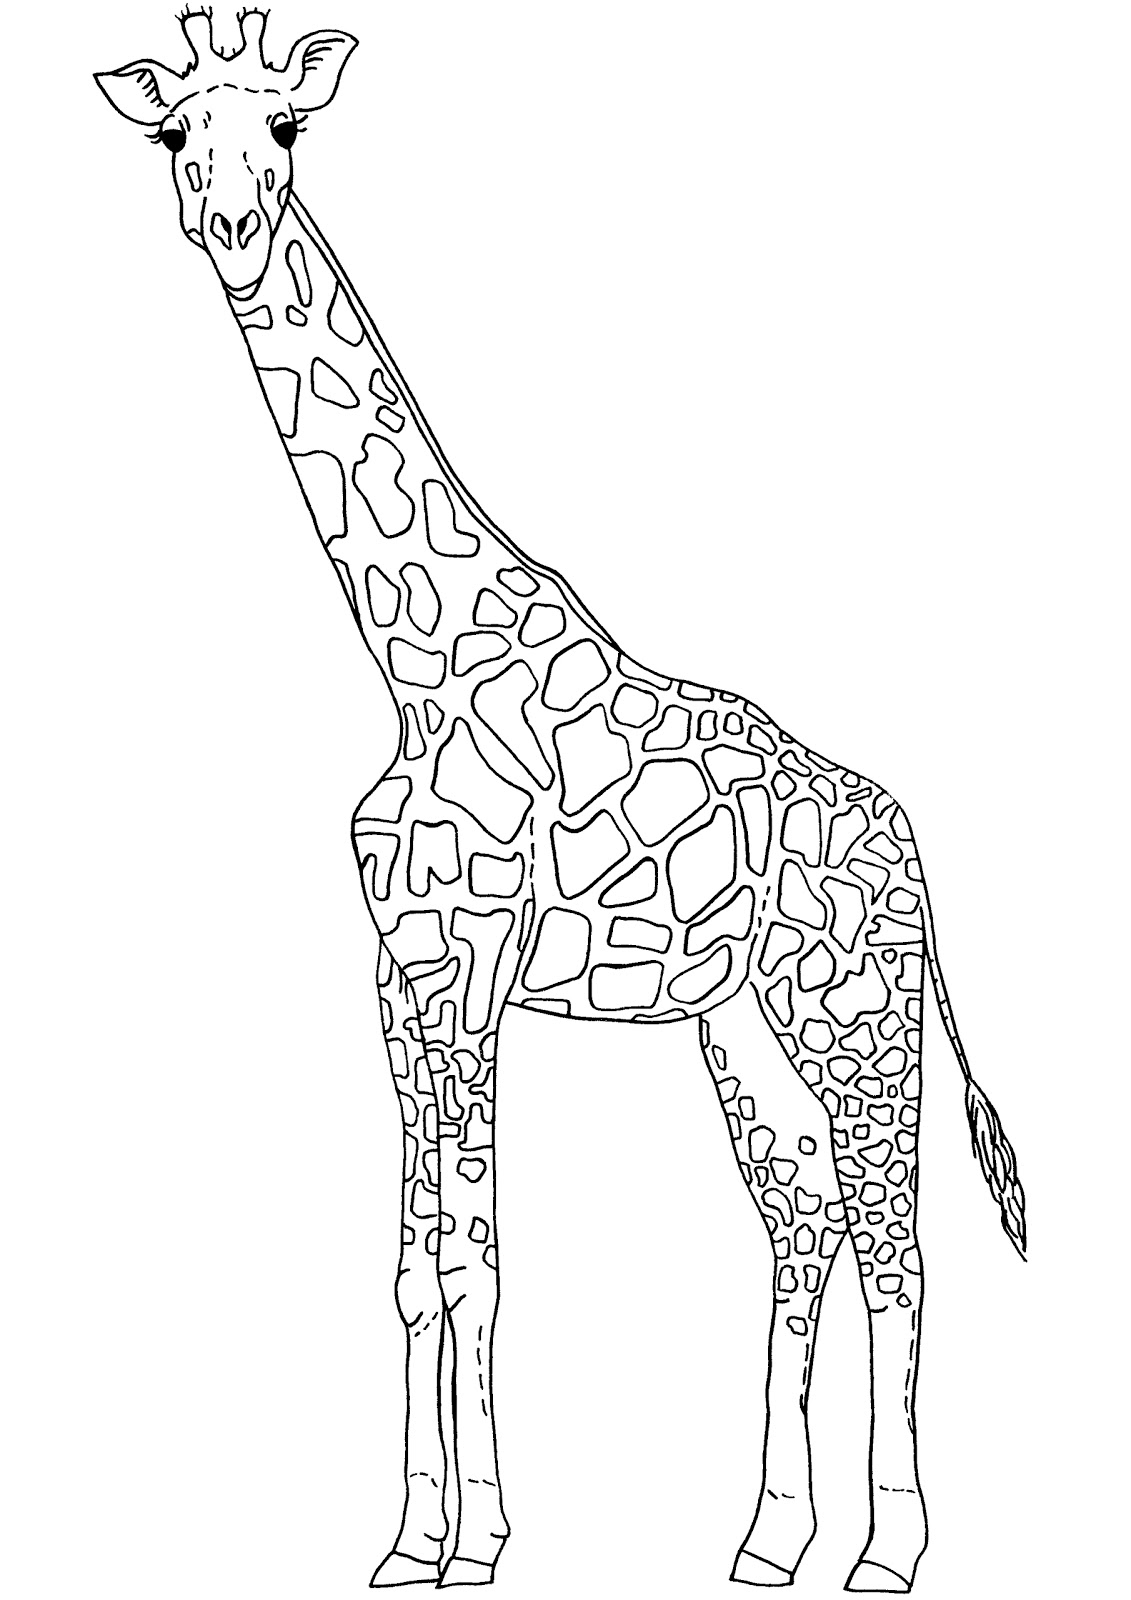 Free Outline Giraffe Cliparts Download Free Clip Art Free Clip Art On Clipart Library